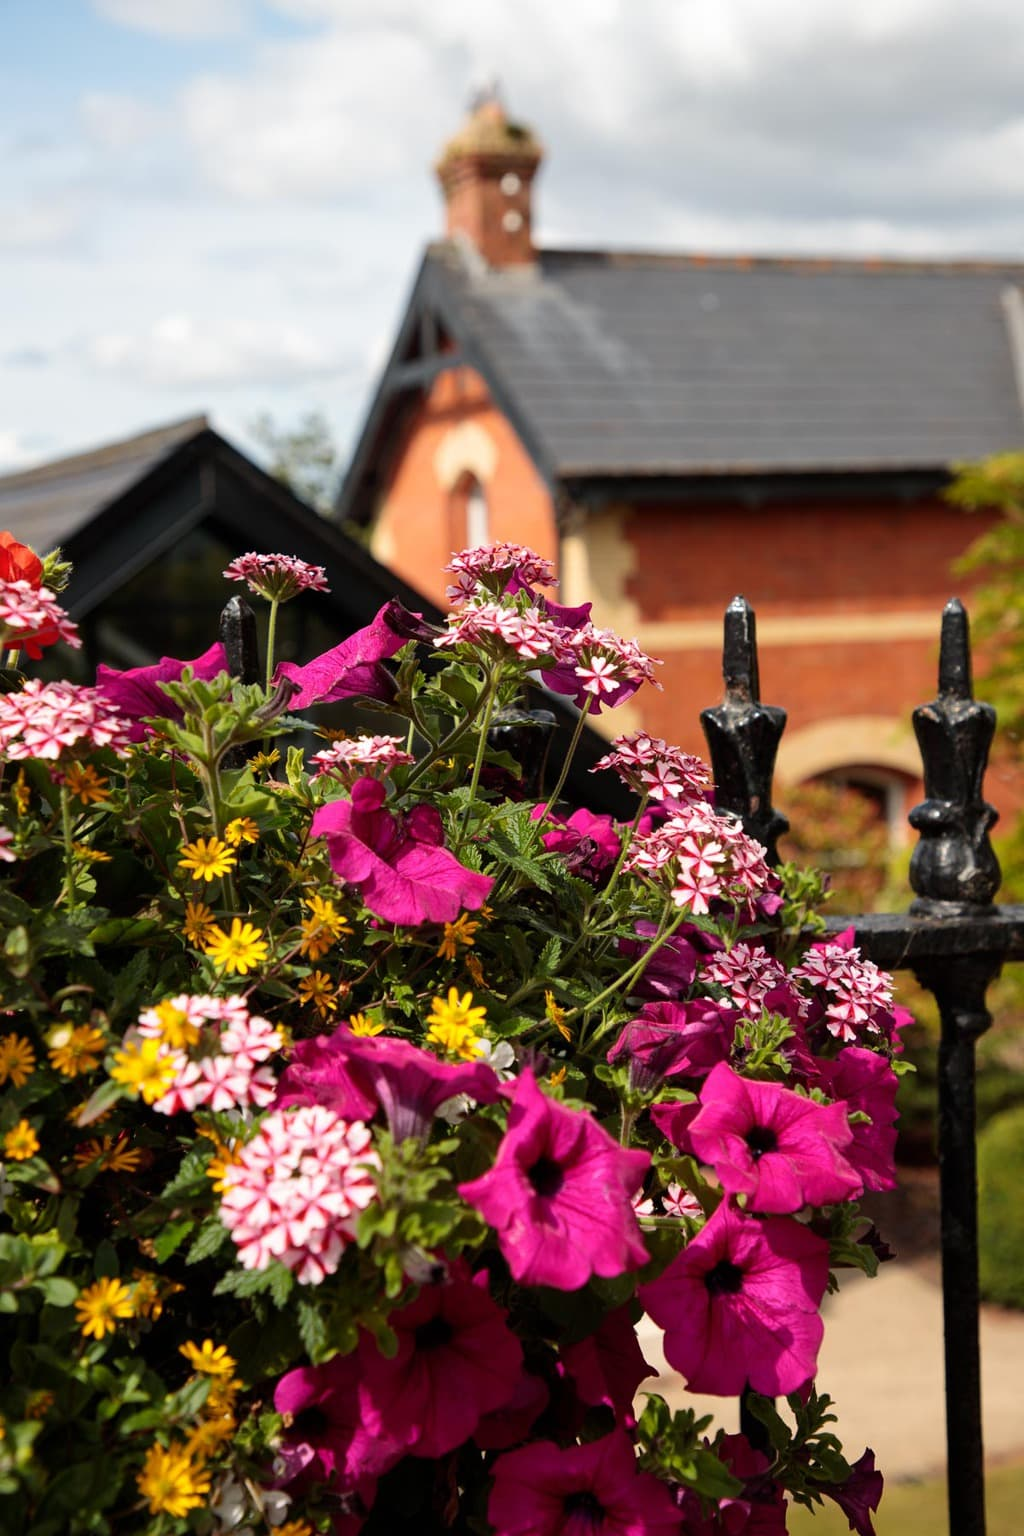 Photo of flowers by Cultra Station in Holywood, Northern Ireland.